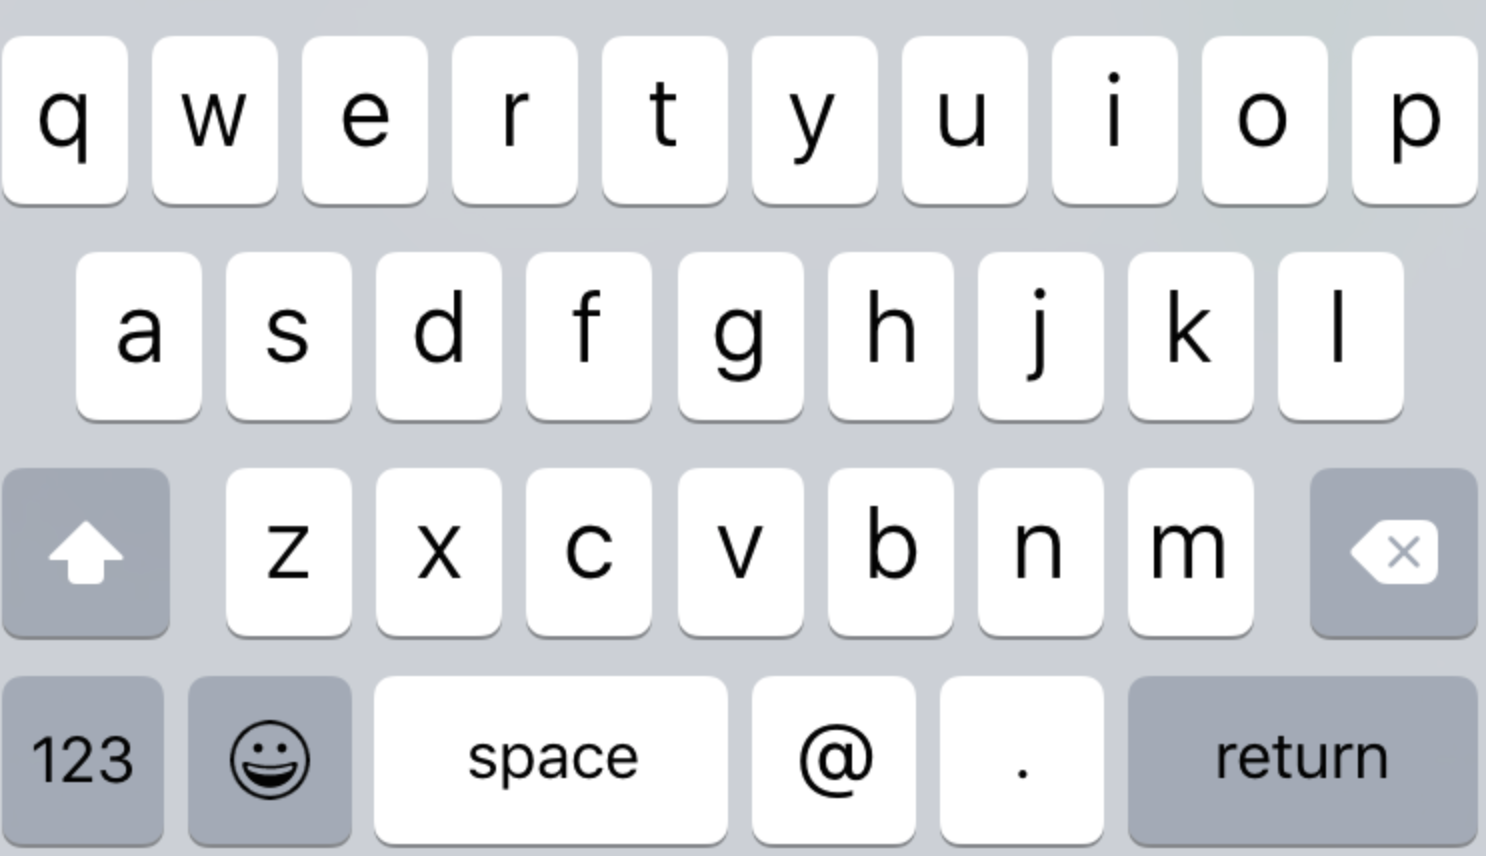 Change Iphone Keypad To Capital Letters